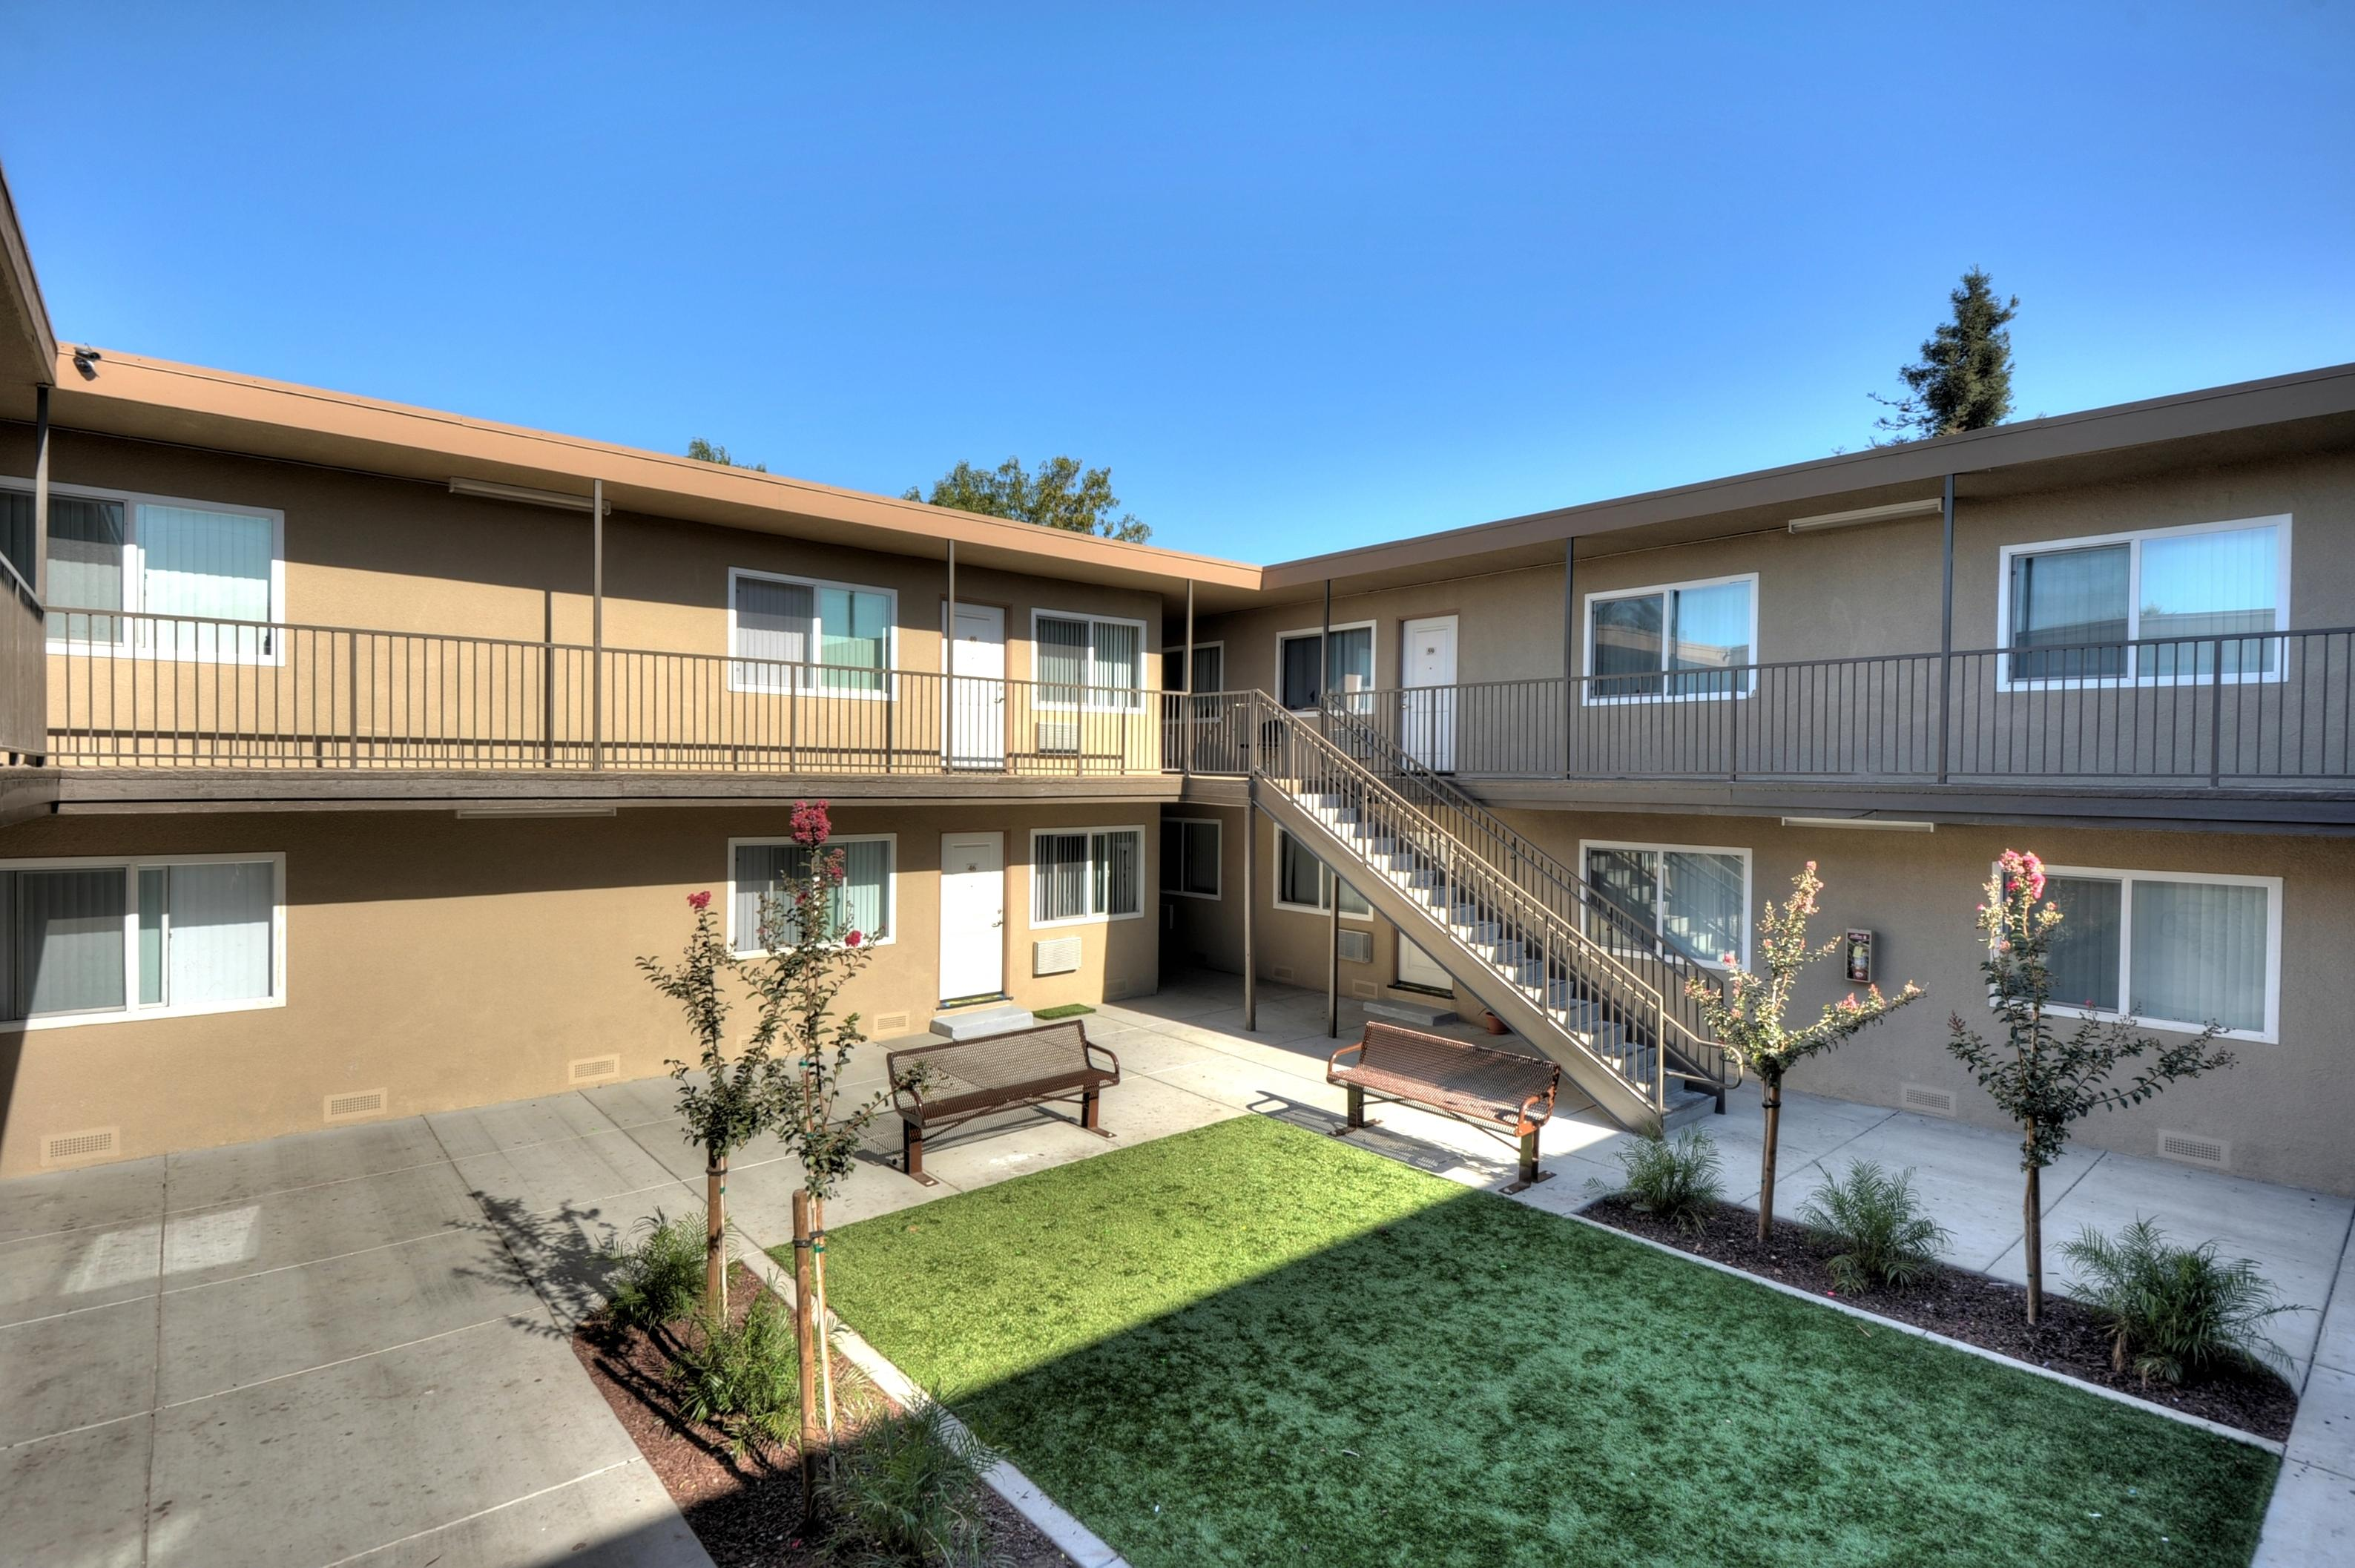 2738 Kollmar Dr San Jose CA-print-023-2nd Building Center Court-1500x999-300dpi.